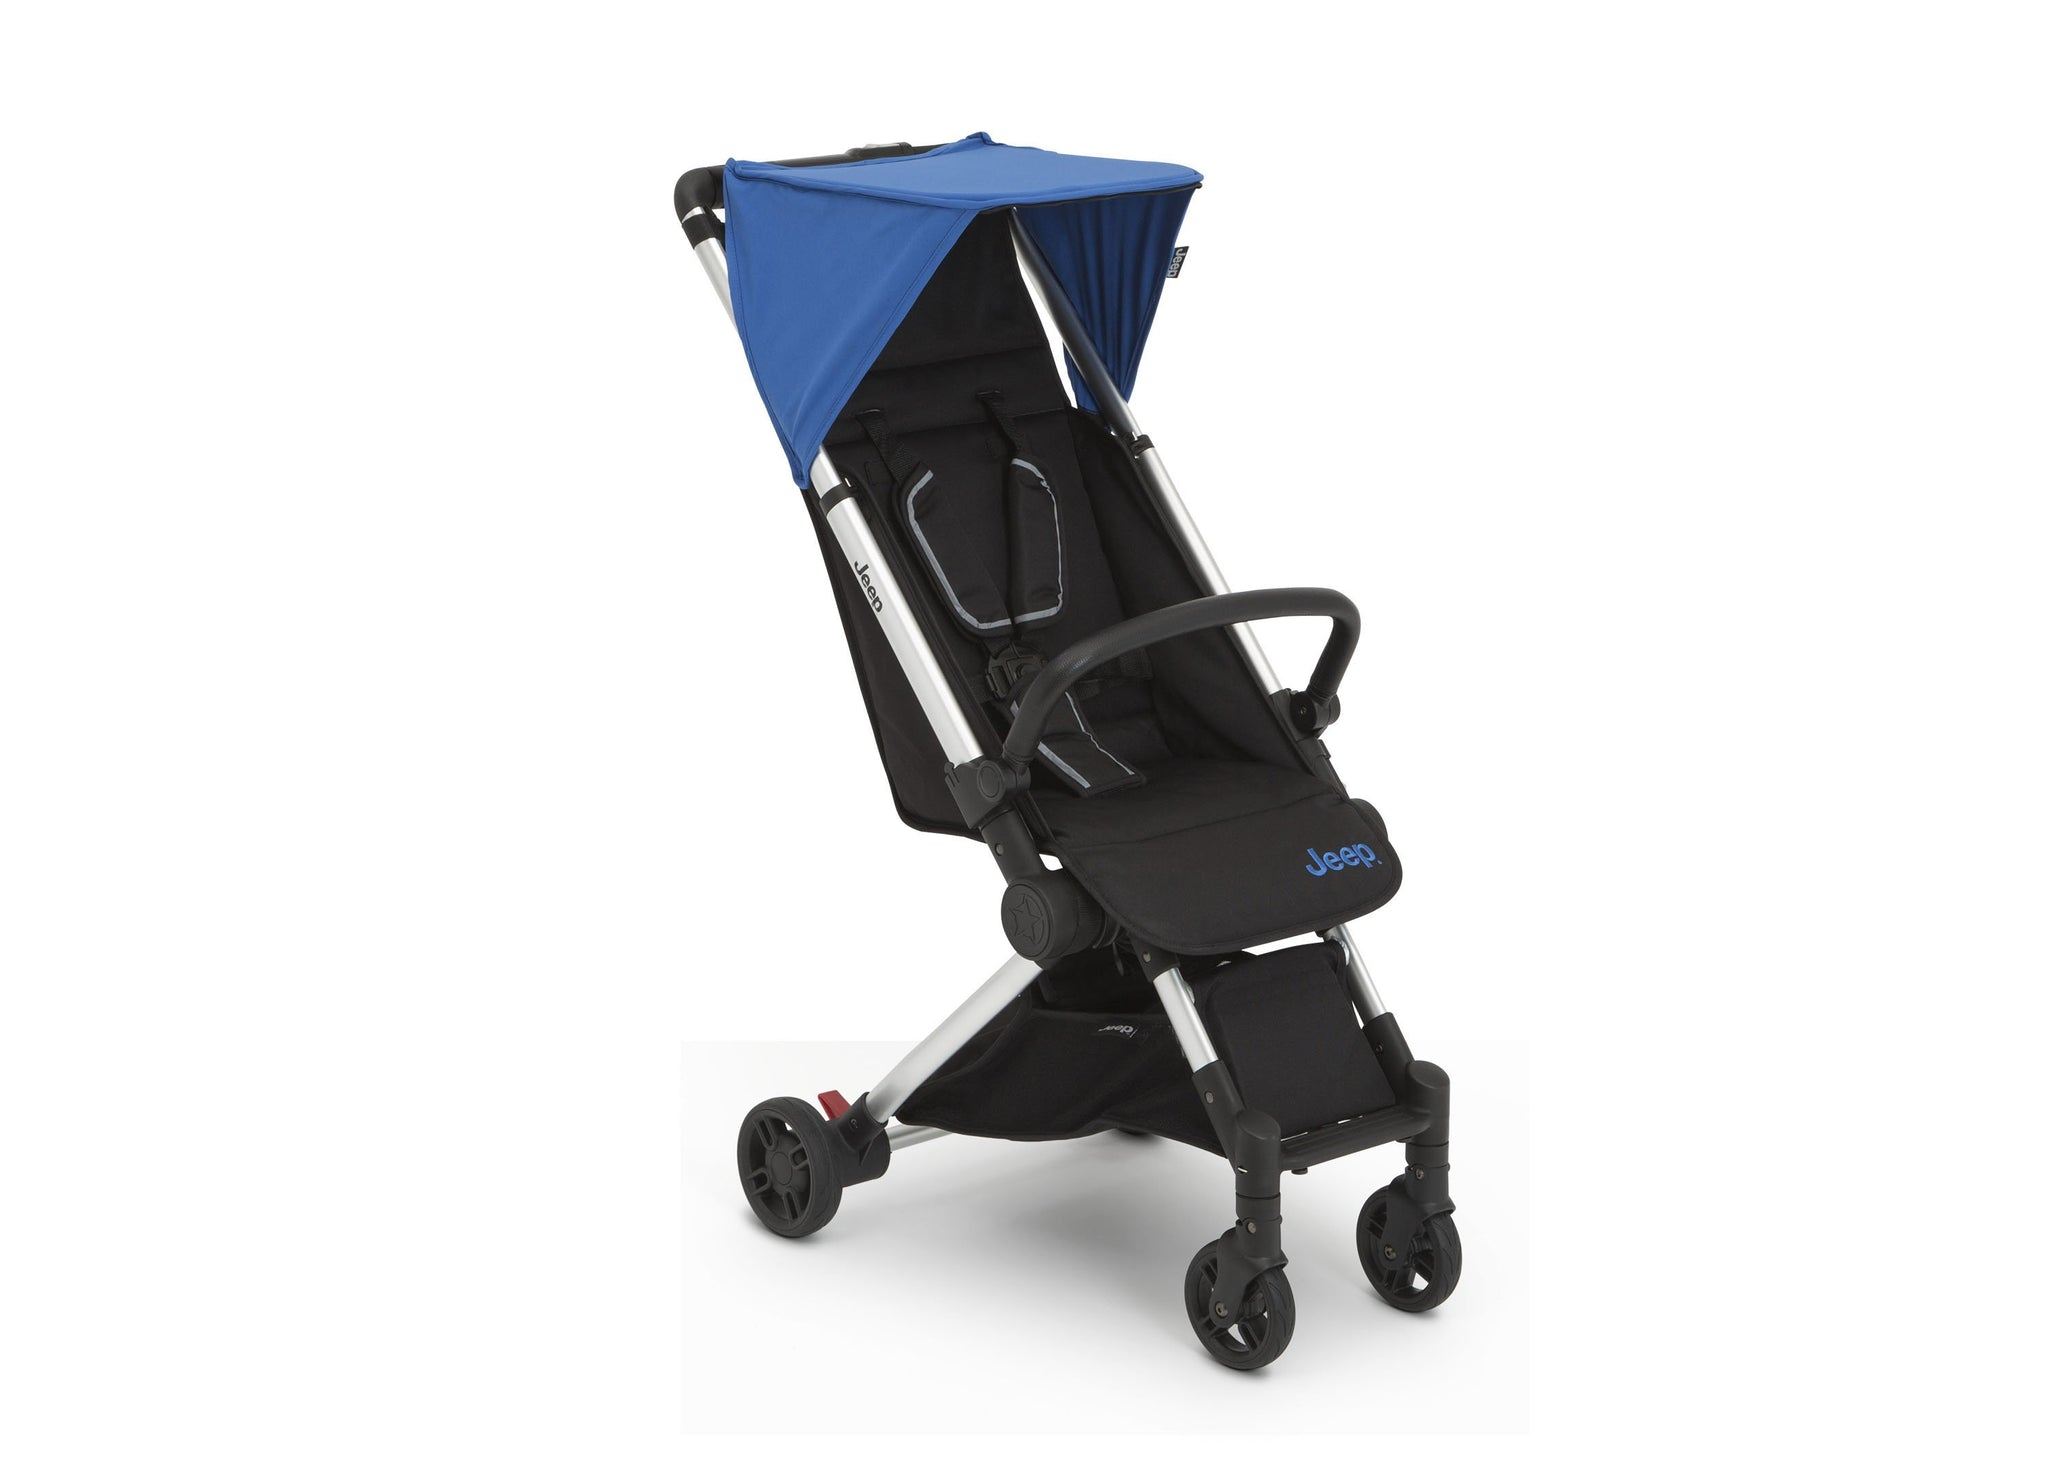 Jeep Cobalt (2119) Arrow Travel Stroller, Right Silo View